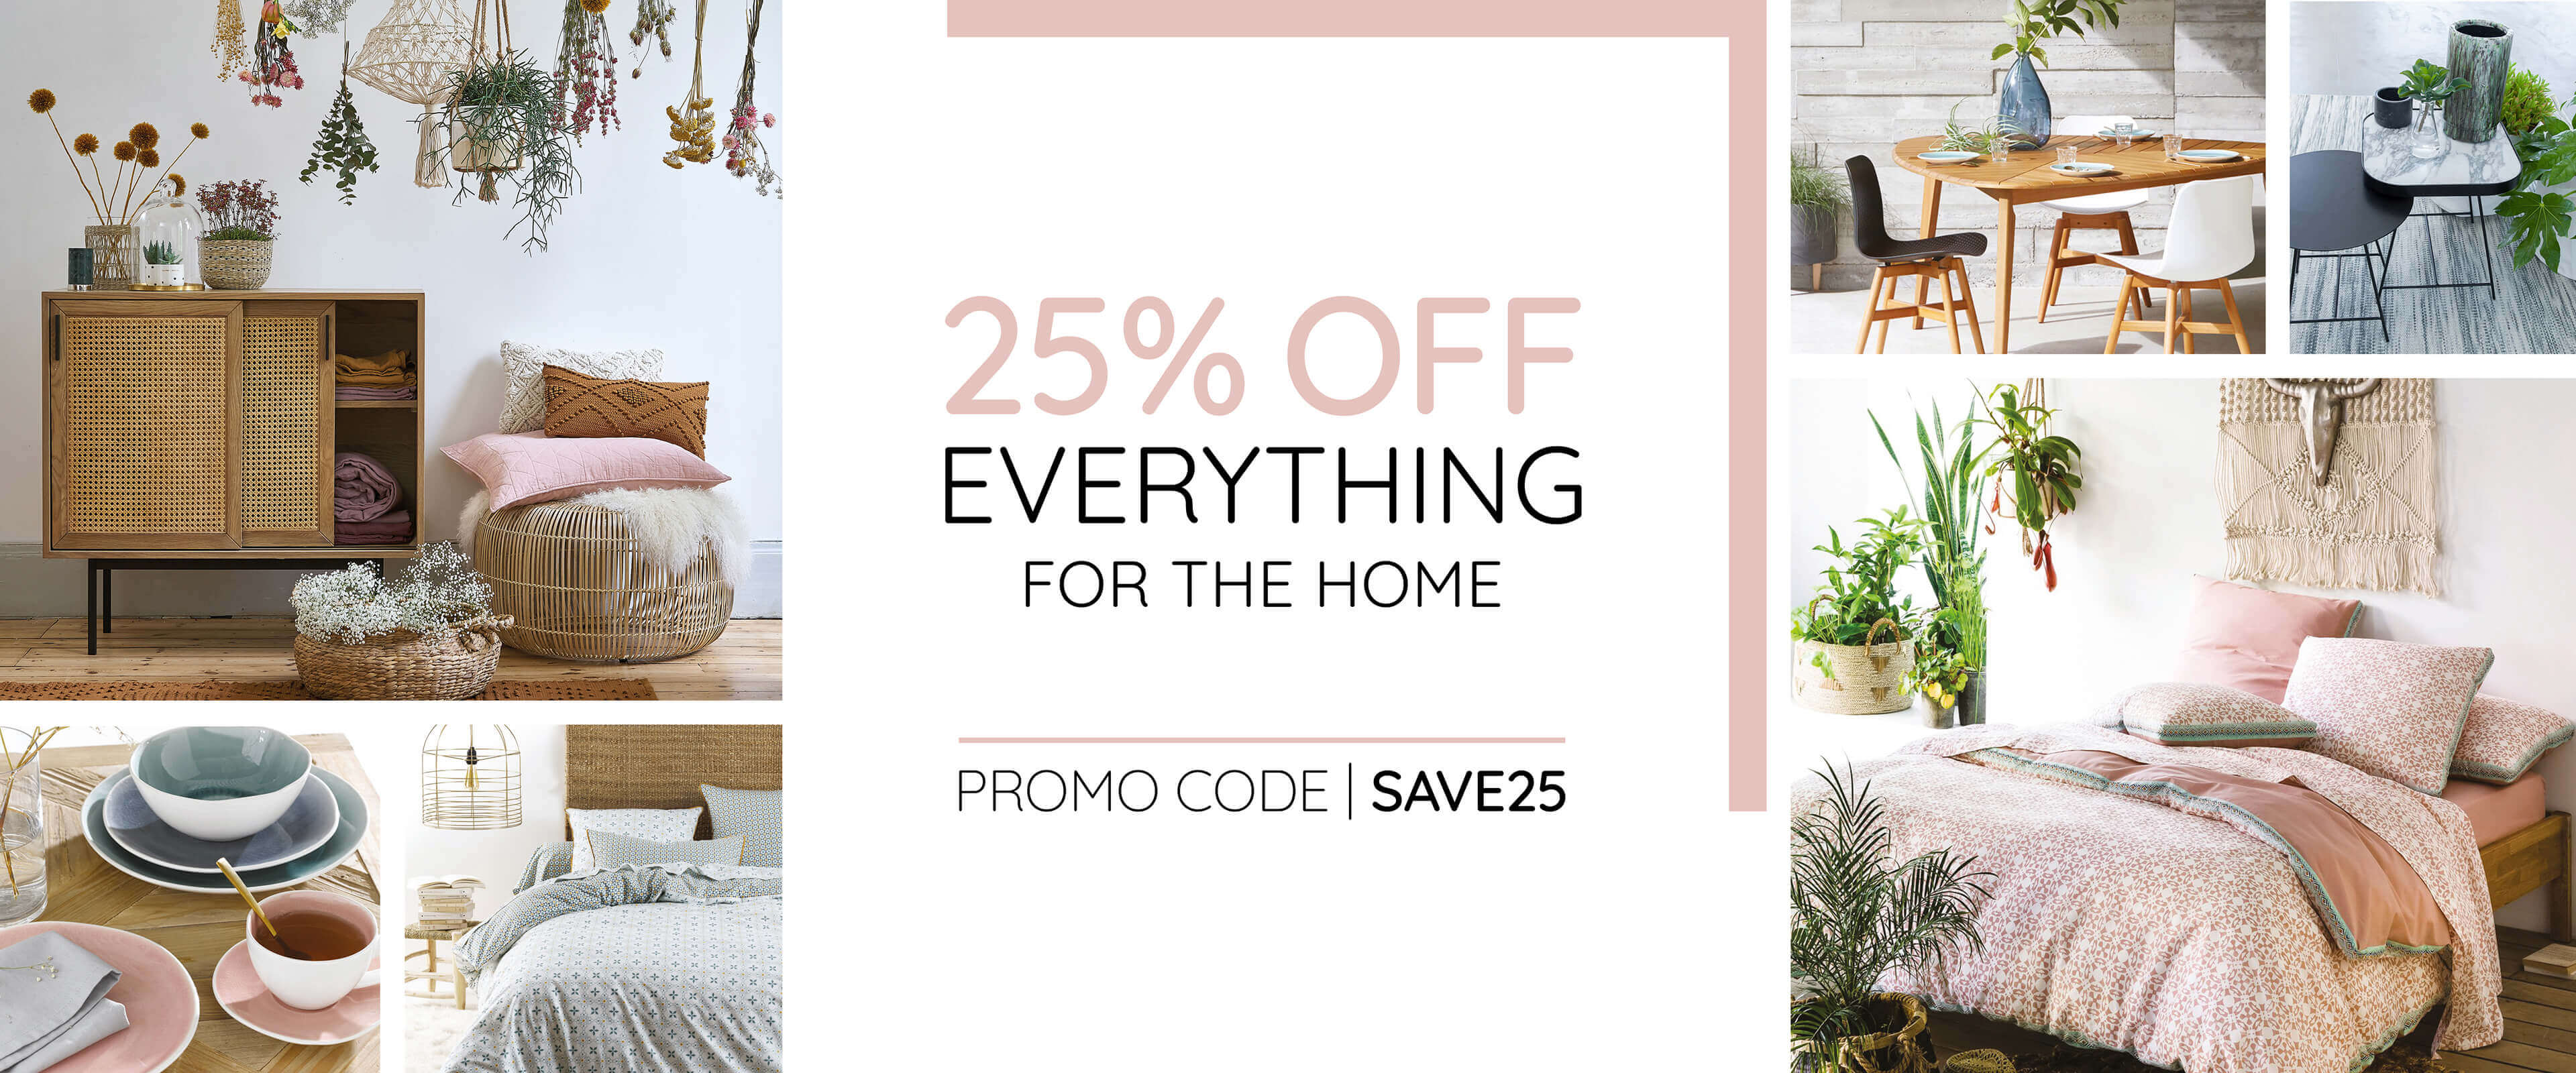 25% Off Everything for the Home